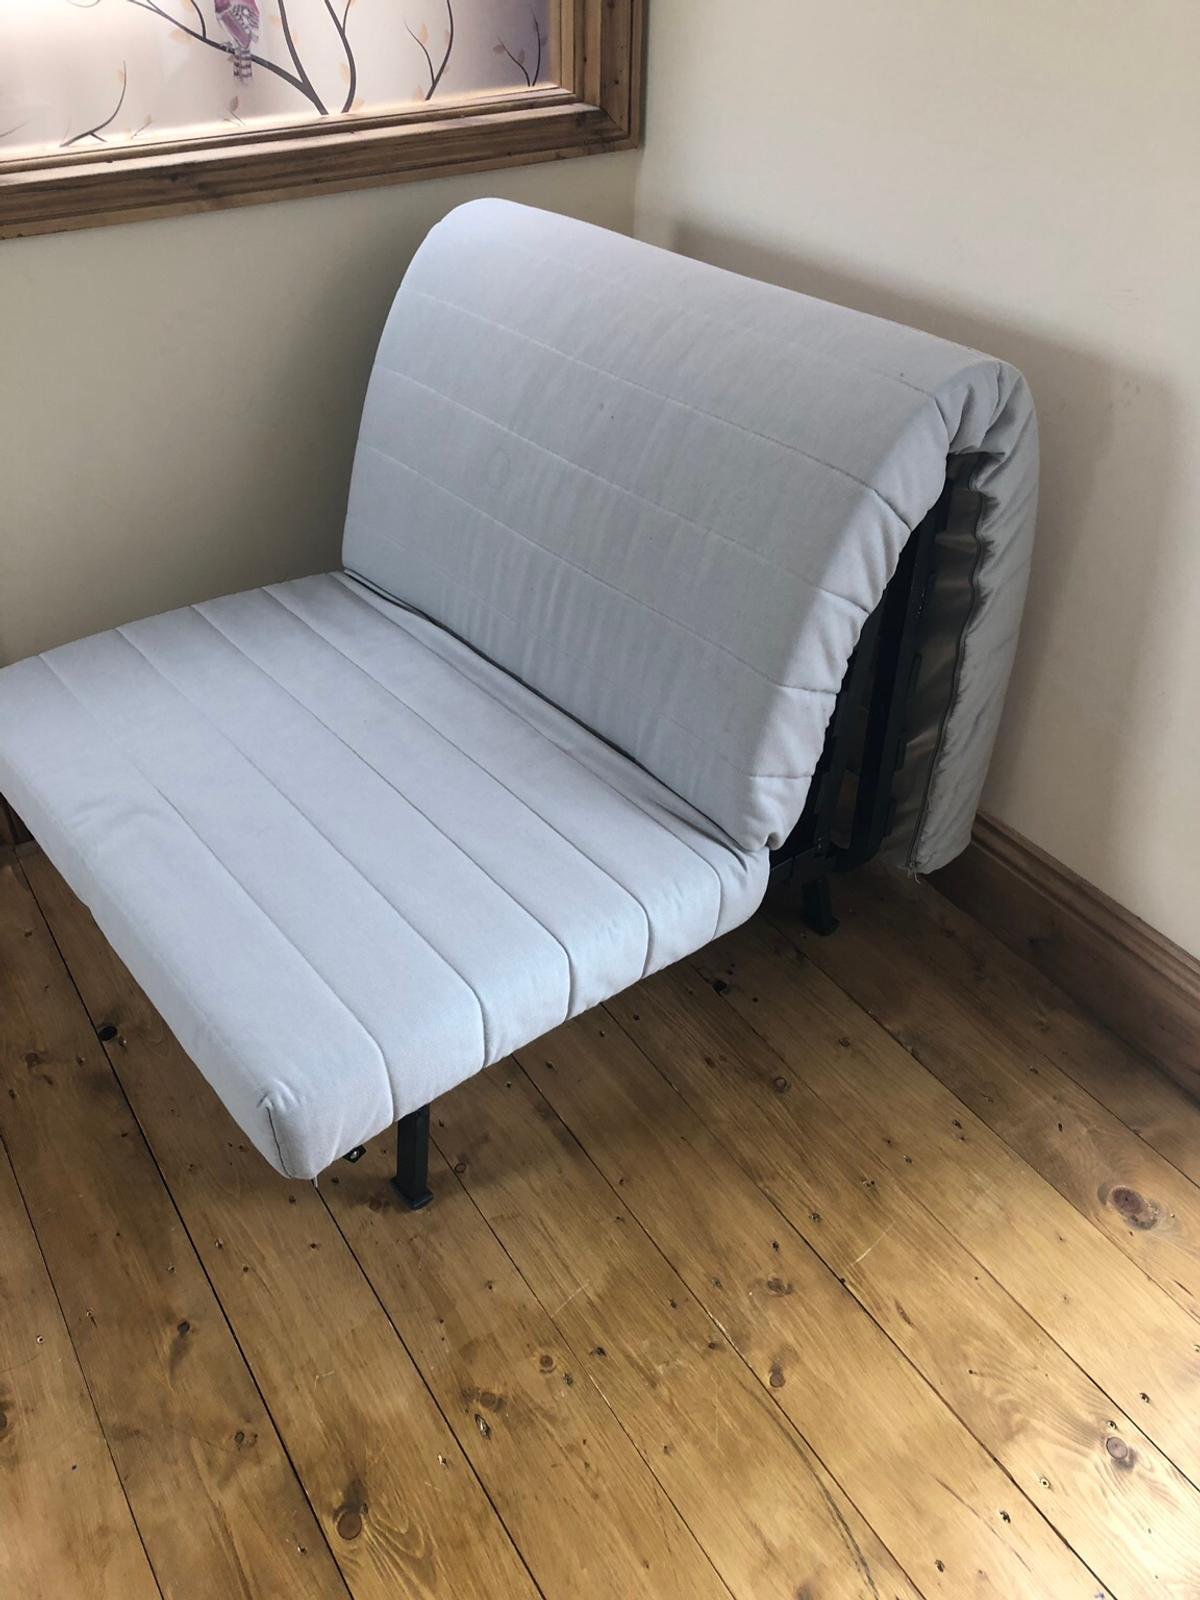 Ikea Fold Chair Bed New In E17 London For 50 00 For Sale Shpock